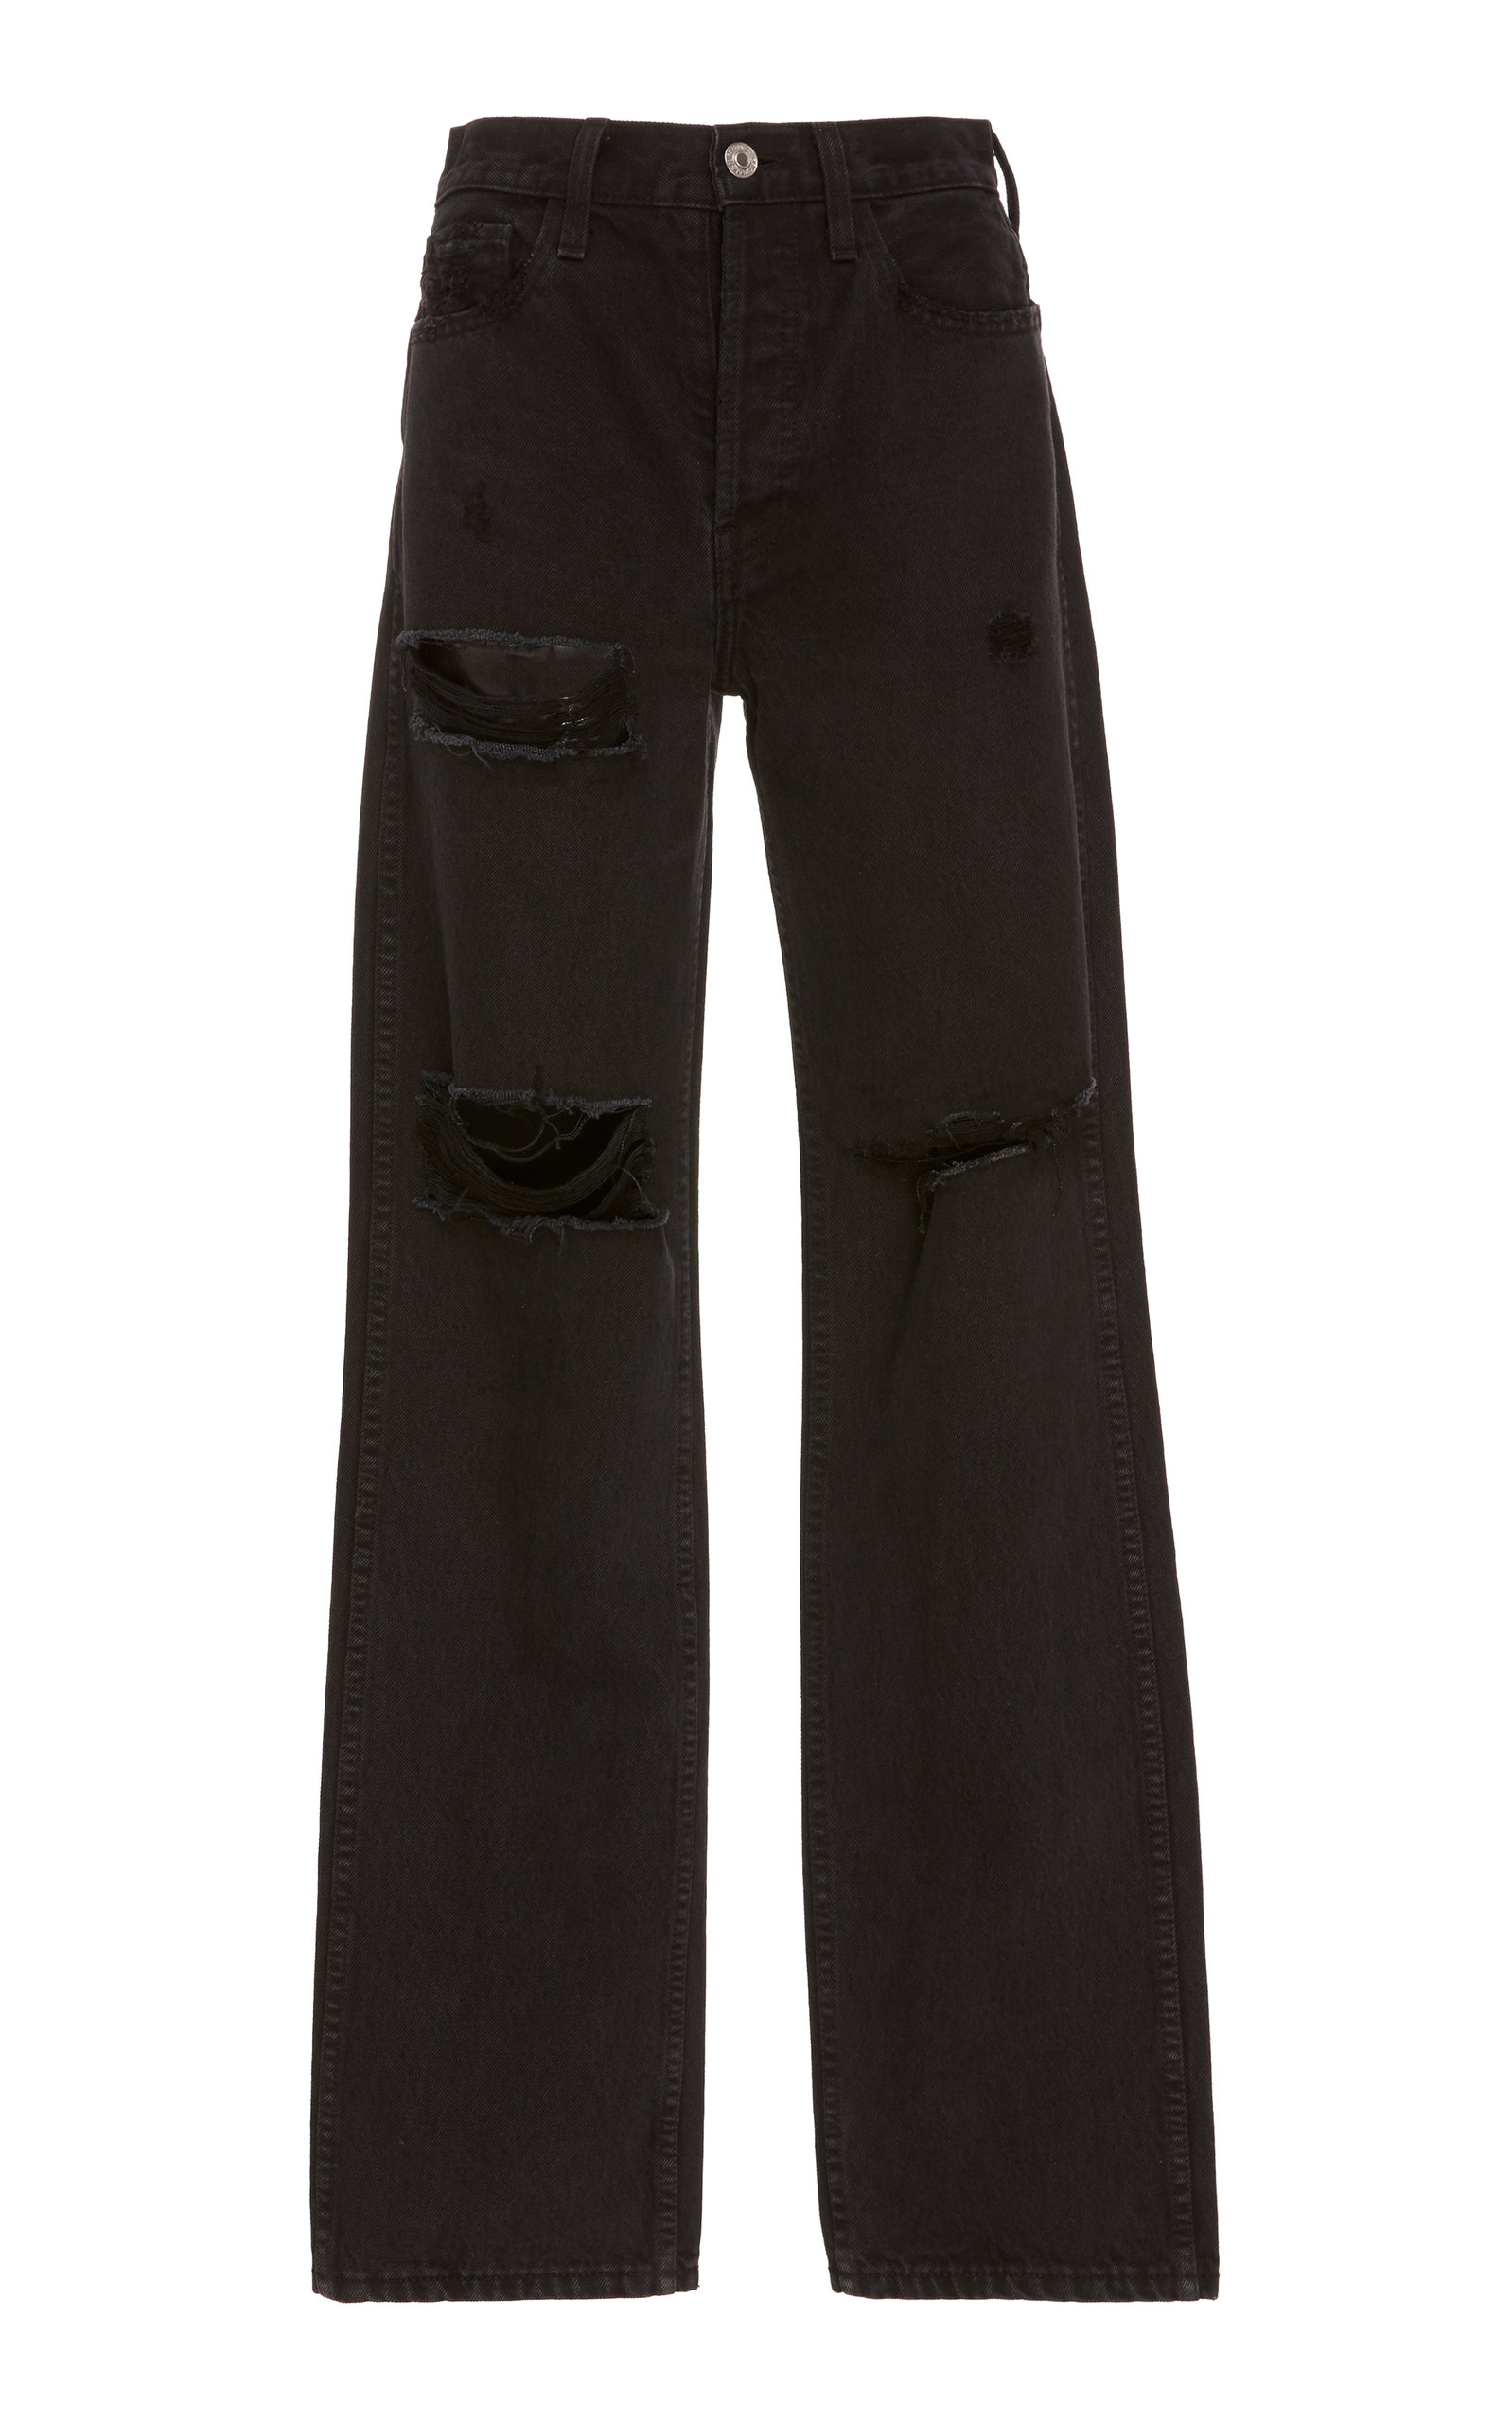 Distressed High Rise Loose Jeans in Black